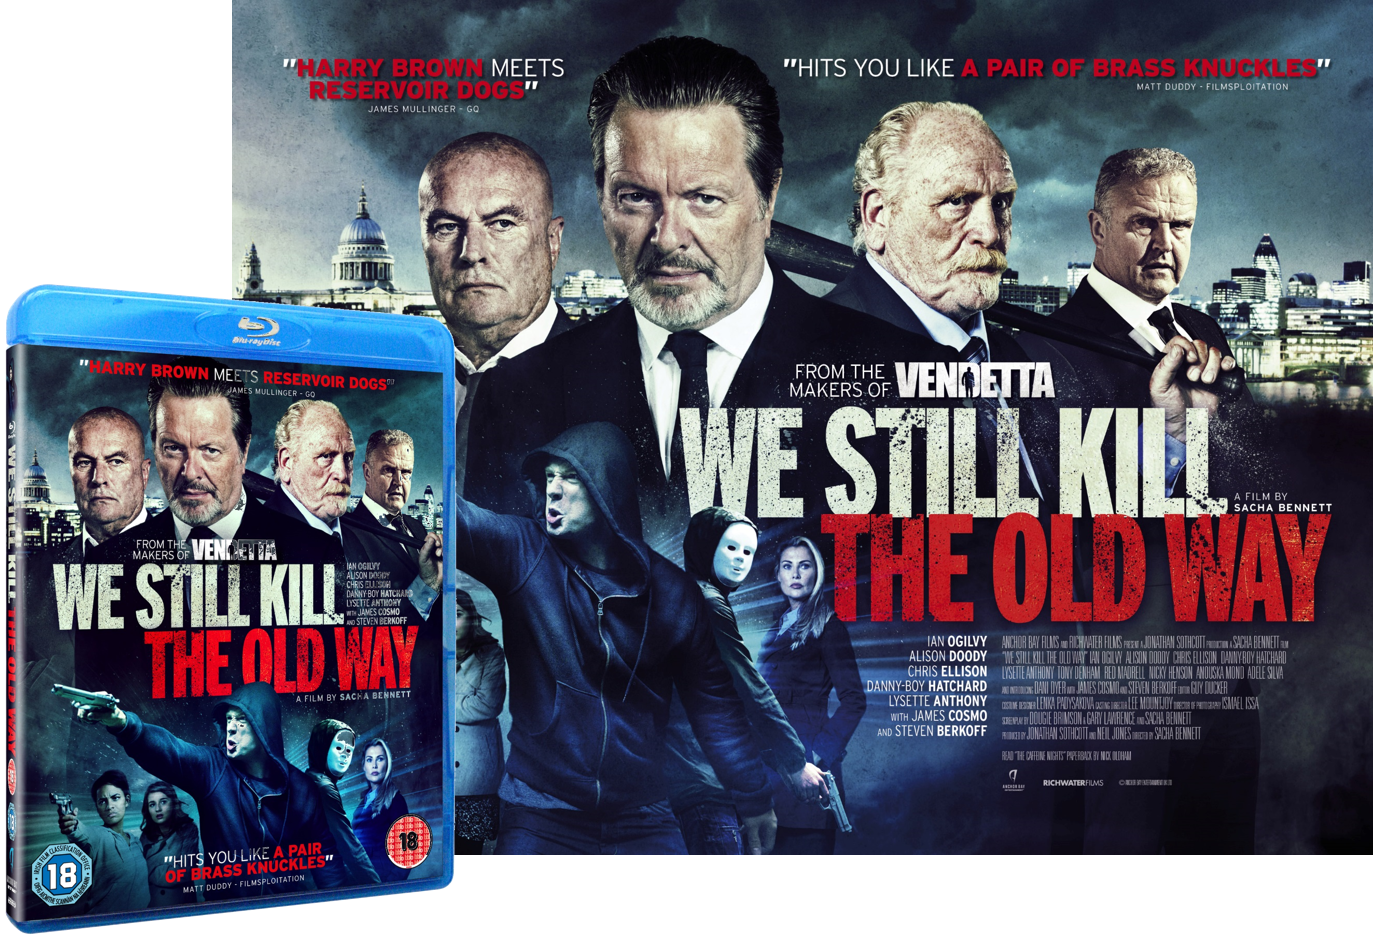 WE STILL KILL THE OLD WAY  sweepstakes